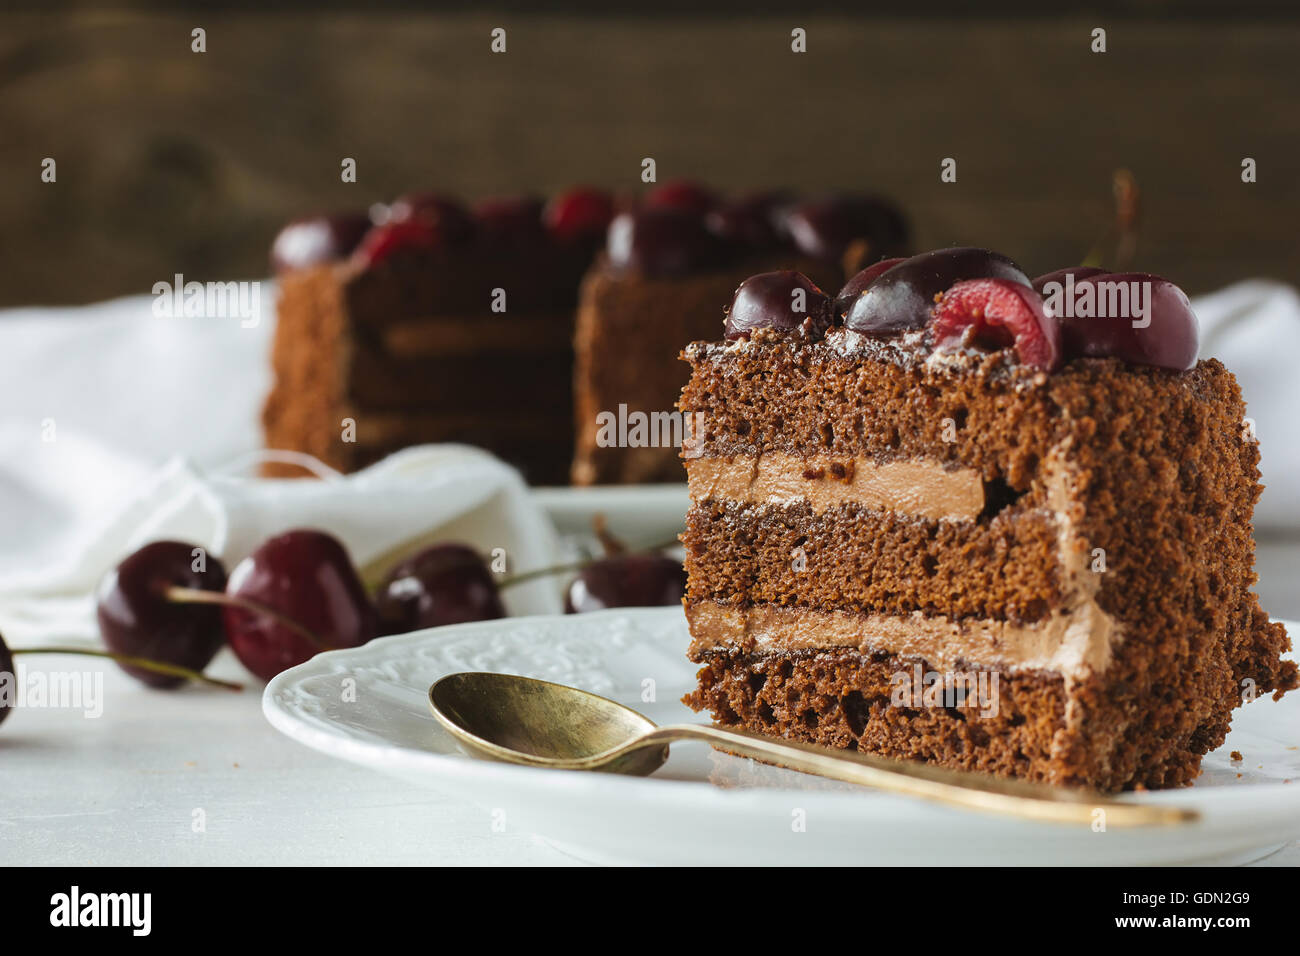 Morceau de gâteau au chocolat aux fruits rouges selective focus Photo Stock